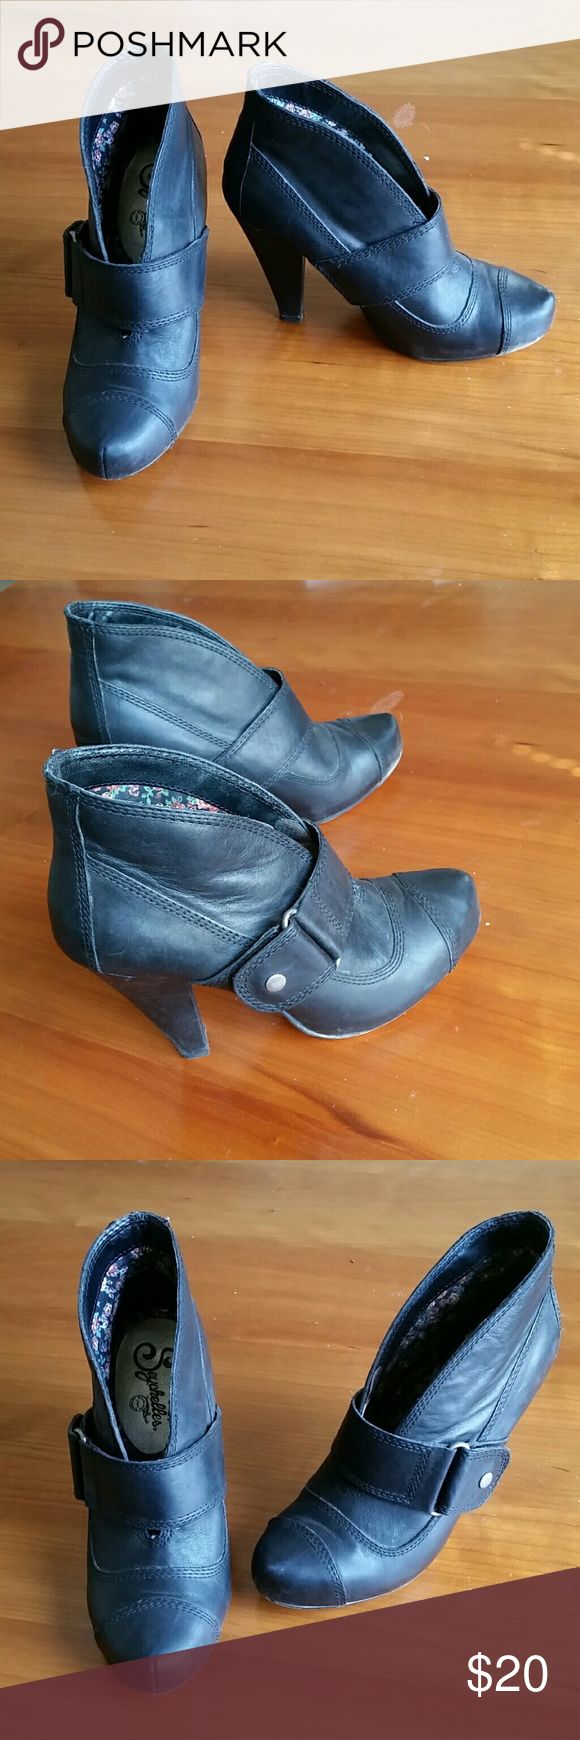 Seychelles Boots Seychelles black booties. Open front with side buckle. Easy and comfy slip on.  Good used condition. Seychelles Shoes Ankle Boots & Booties